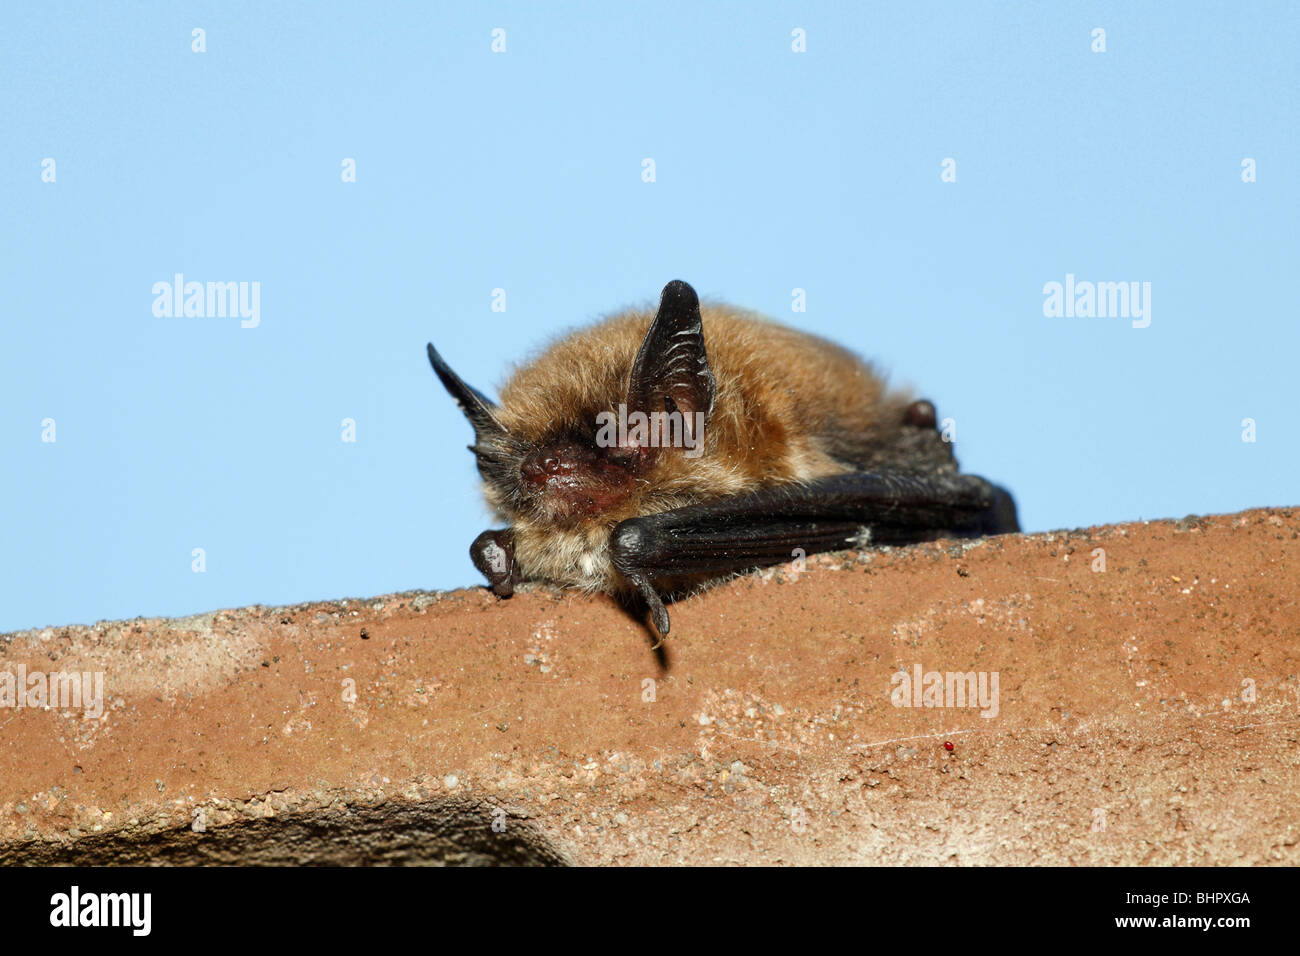 Pipistrelle Bat - (Pipistrellus pipistrellus), on house roof edge during daytime, Lower Saxony, Germany - Stock Image